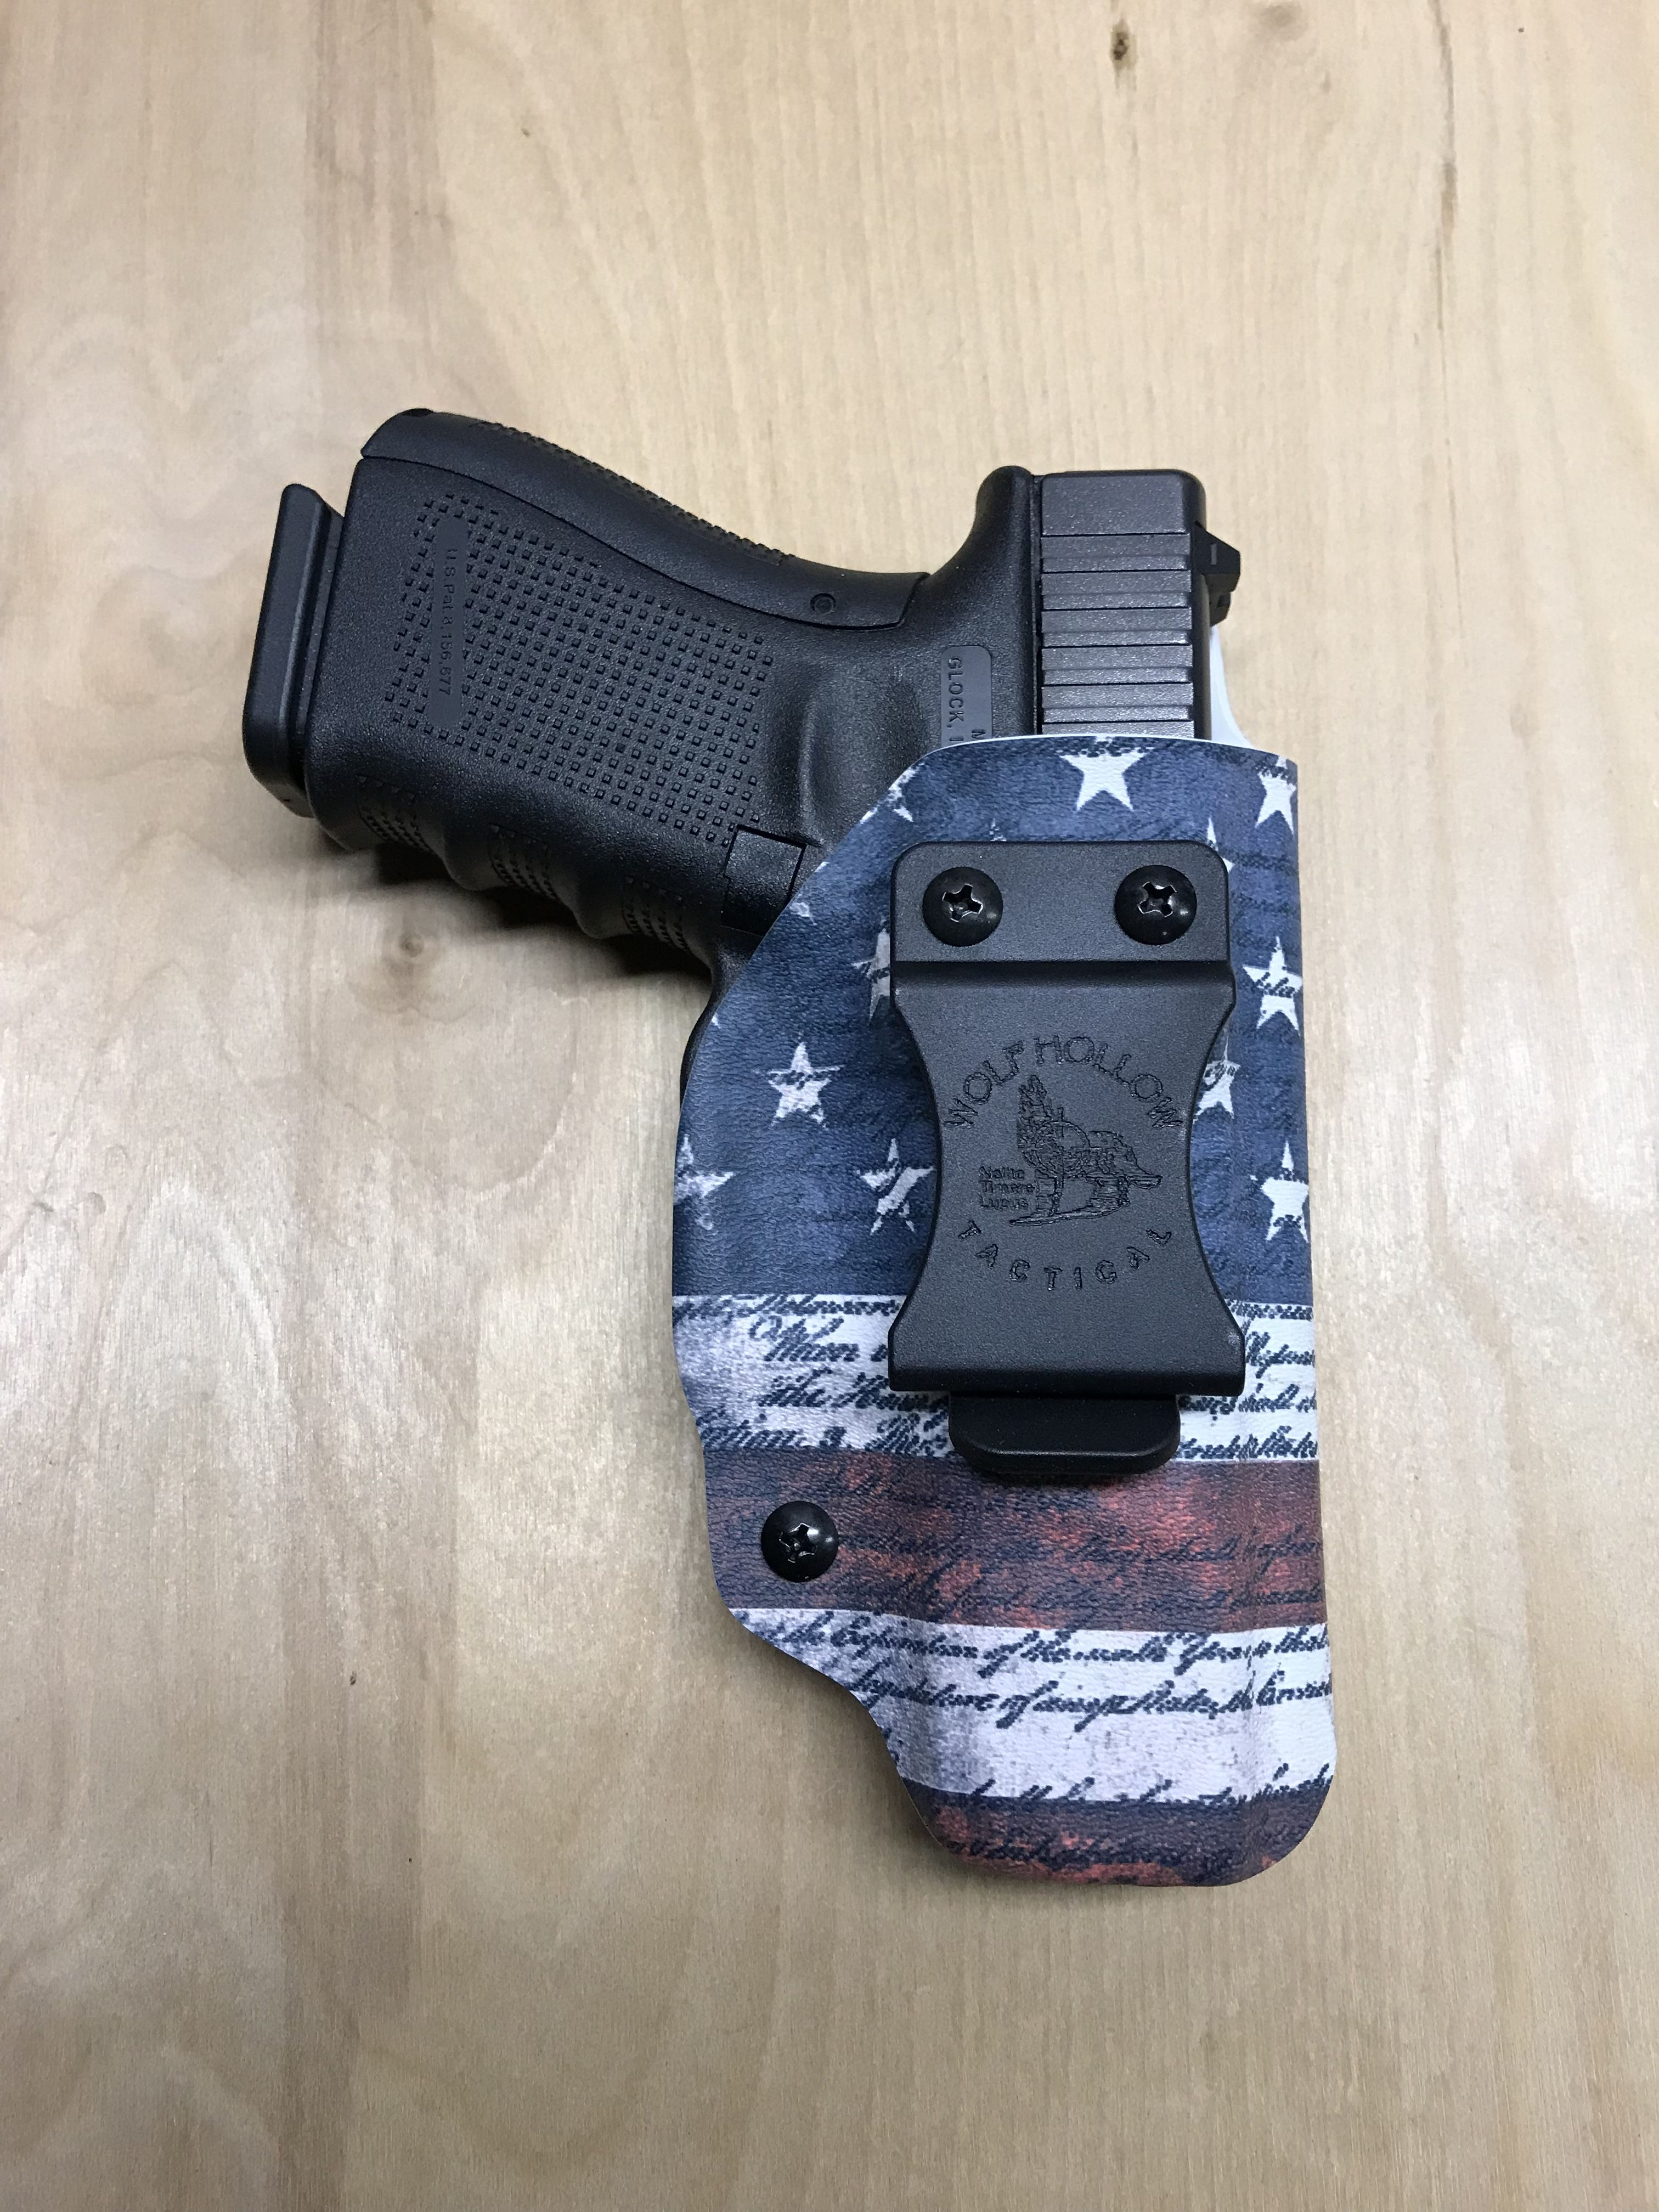 Glock 19 IWB holster in we the people American flag Infused